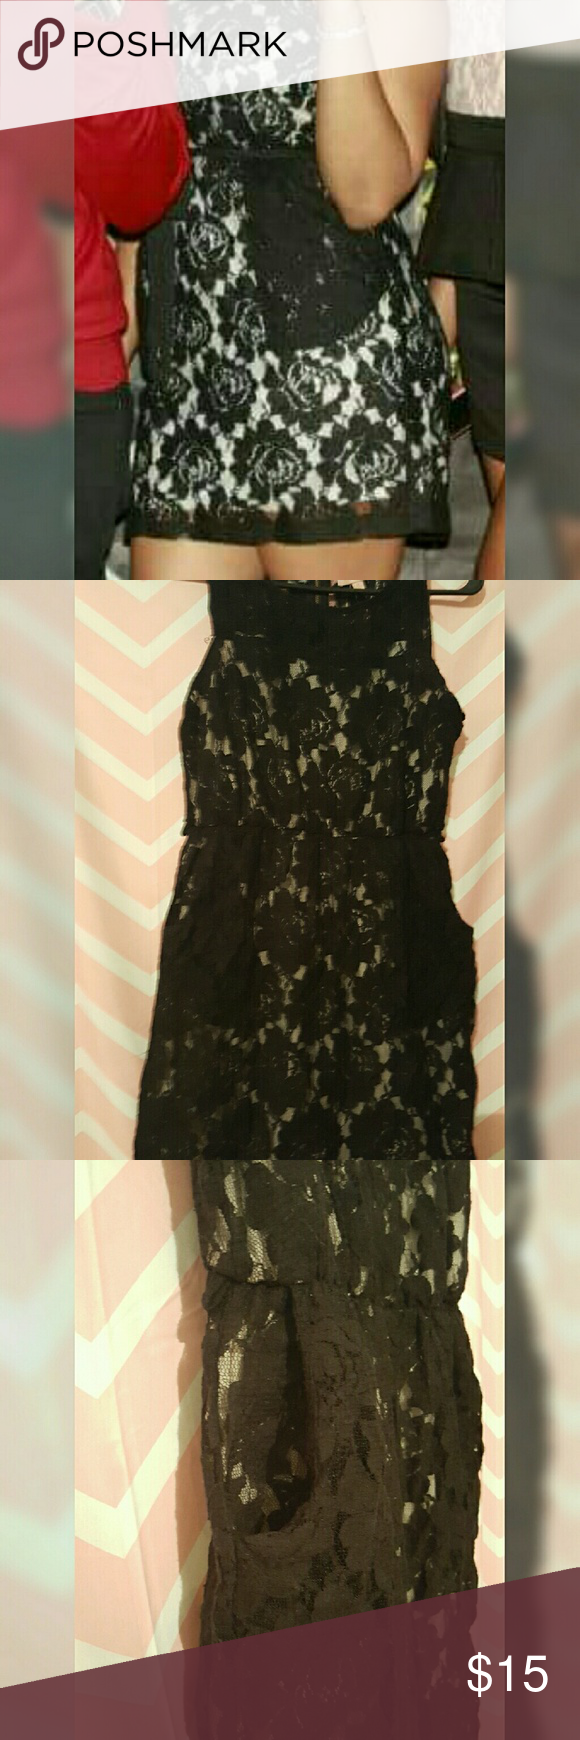 Black Hearts sleeveless dress Sleeveless black lace dress with pockets and belt loops (belt was not included when purchased). Hearts Dresses Midi